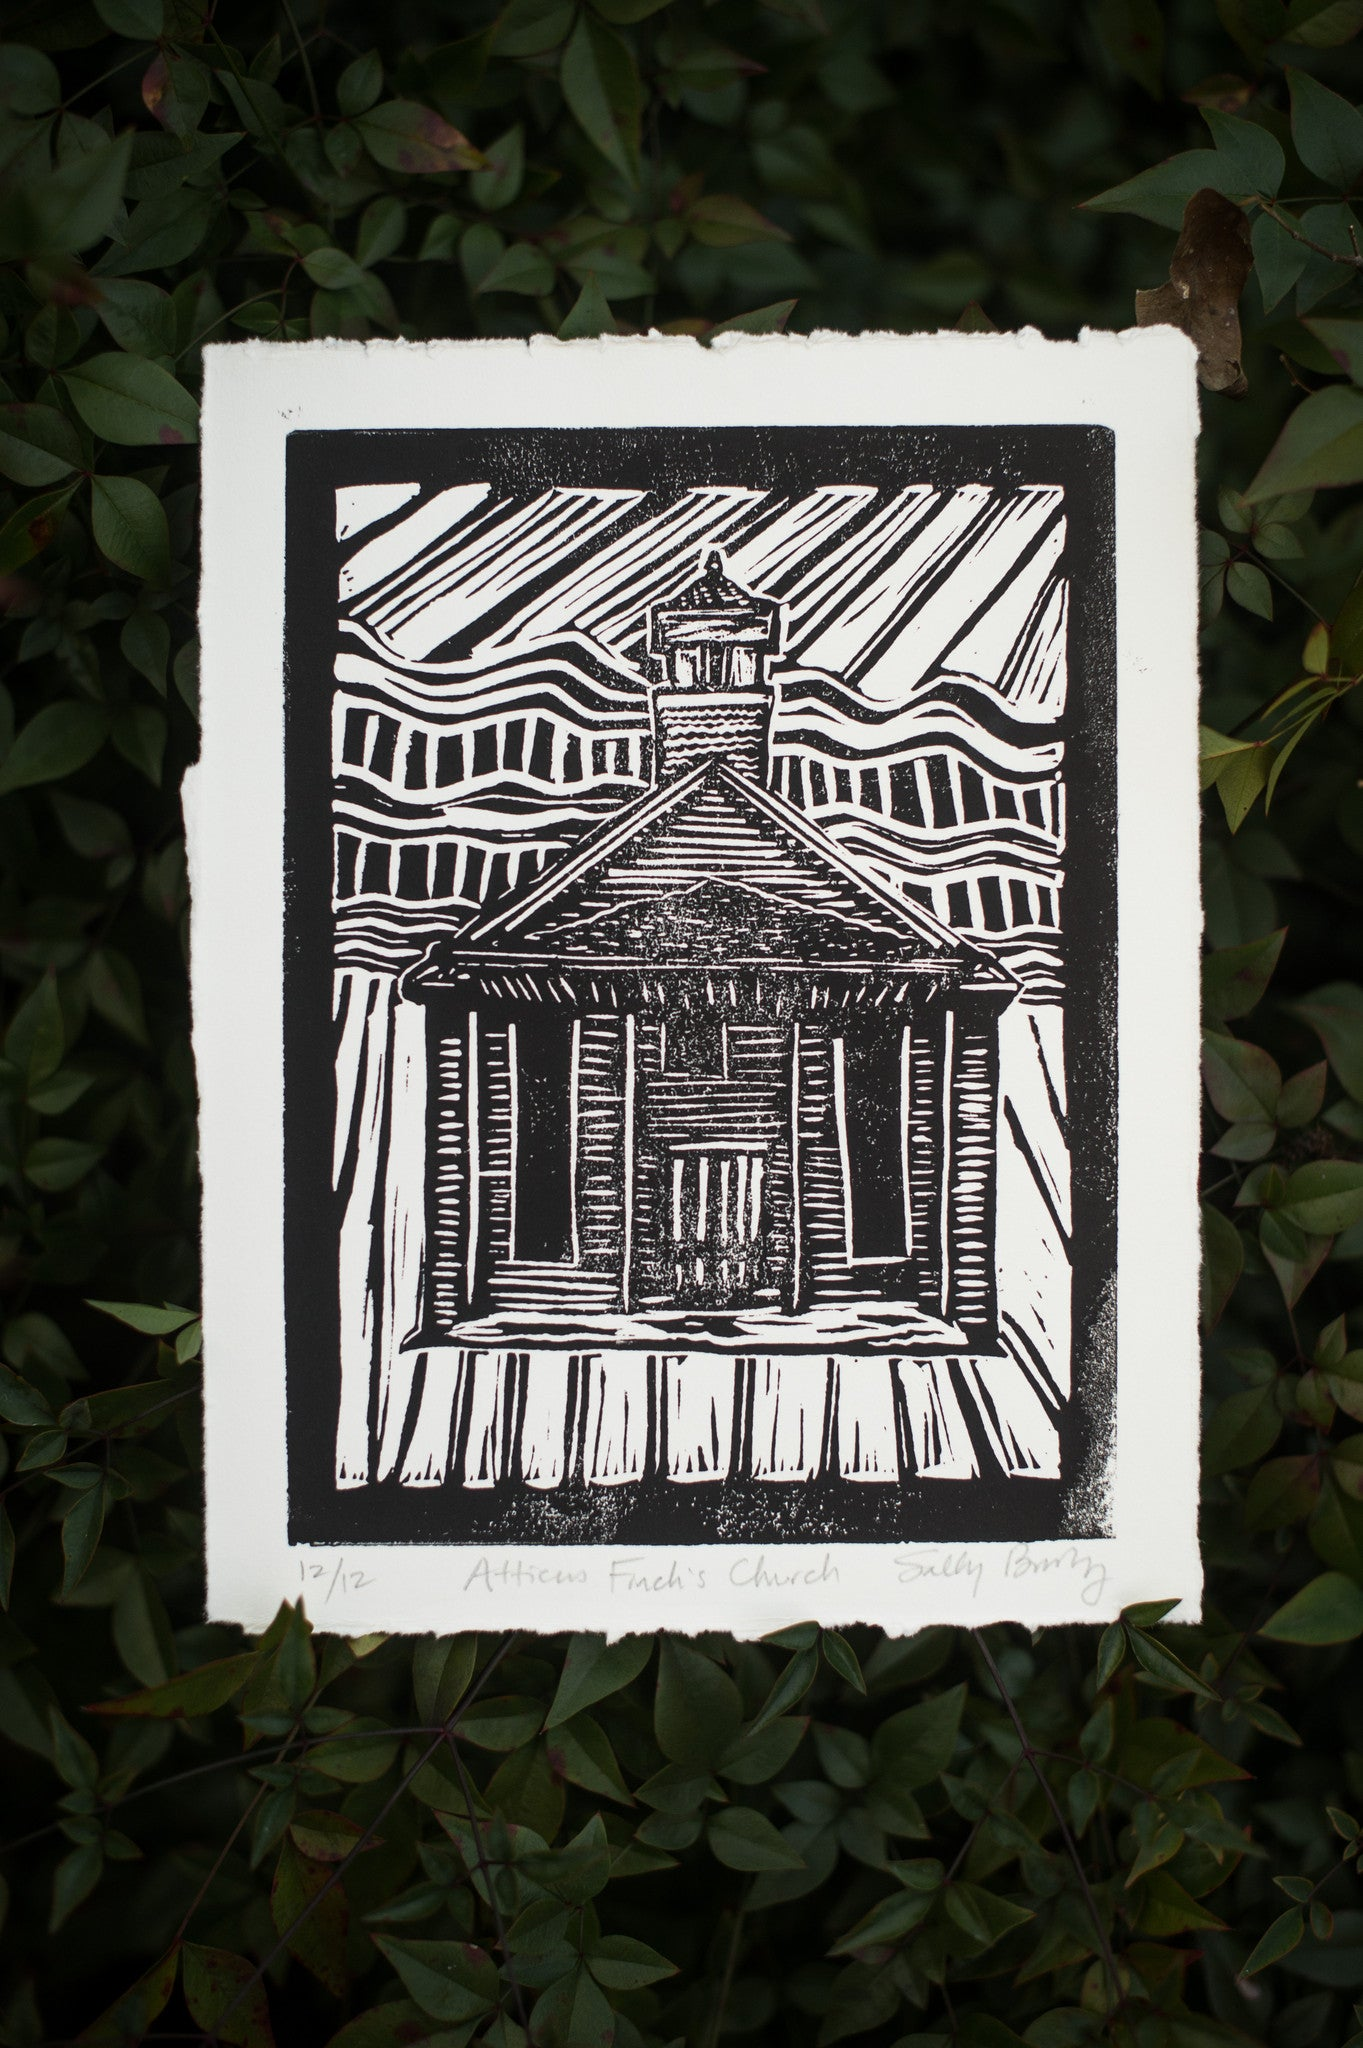 To Kill a Mockingbird's Atticus Finch Church Handmade Linocut Art Print Literary Gift by Eastgrove Studio